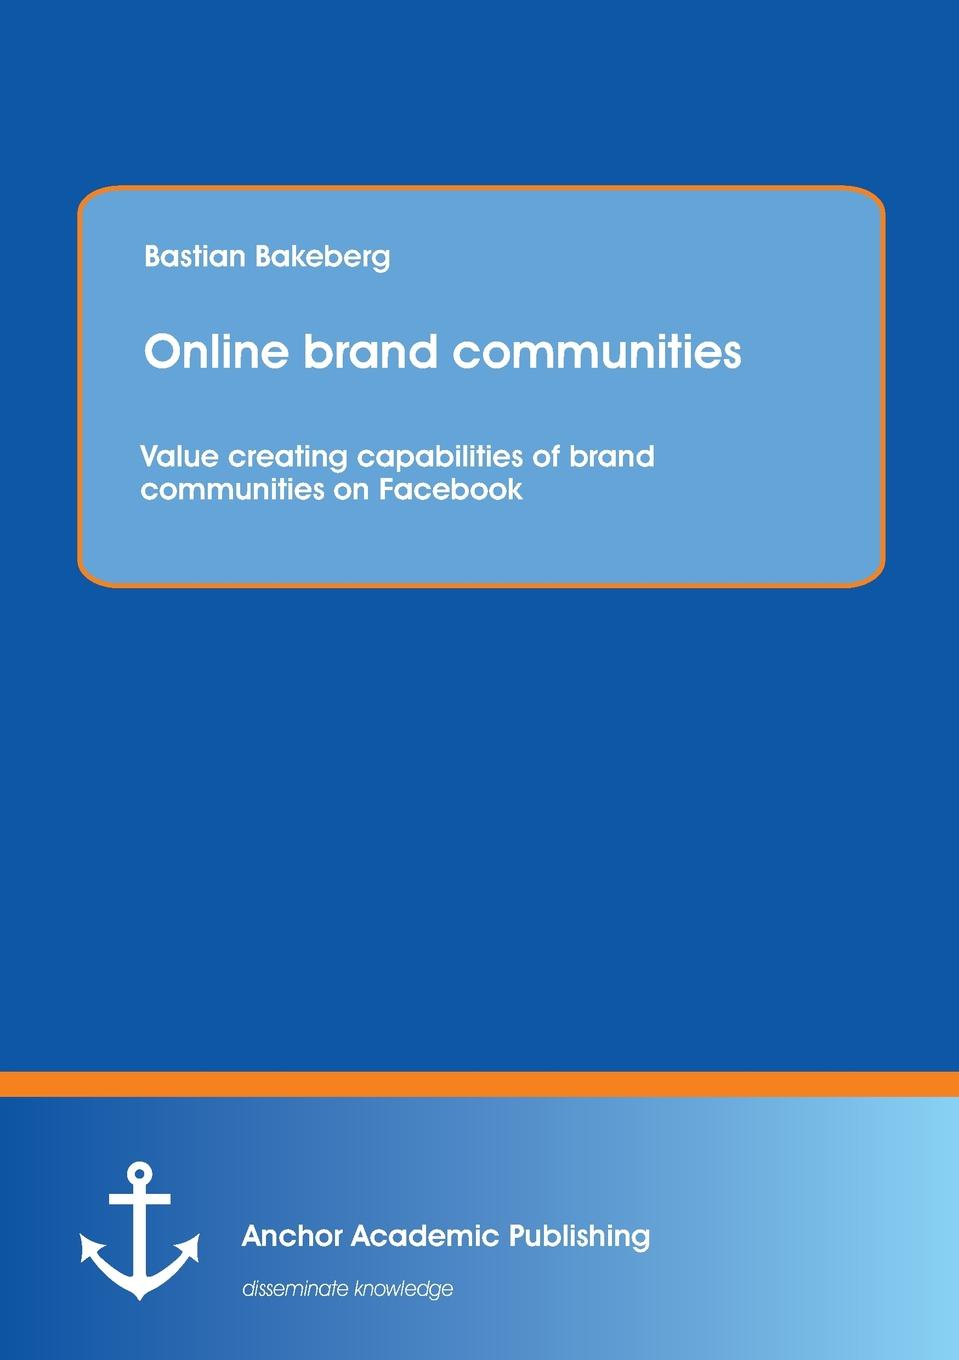 Online brand communities. Value creating capabilities of brand communities on Facebook